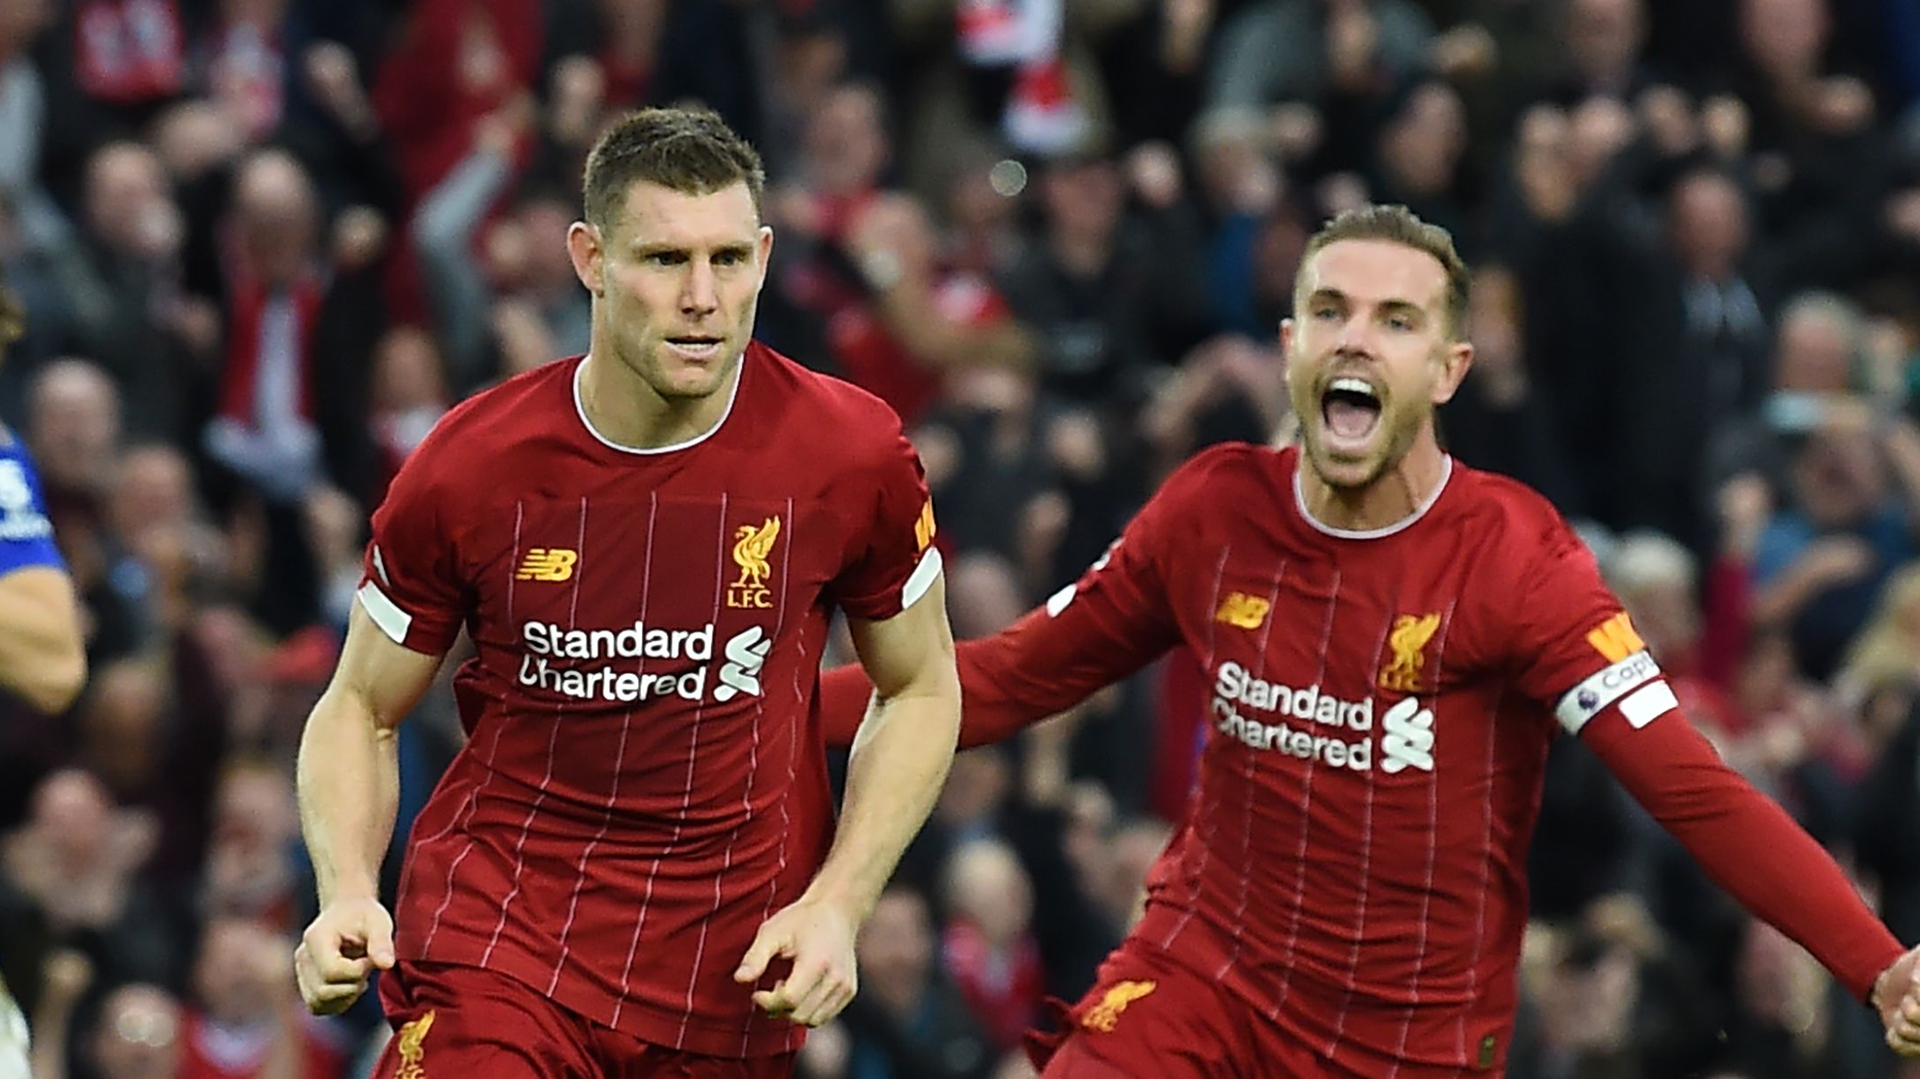 'It can't always be pretty' - Milner hails Liverpool's battling ability